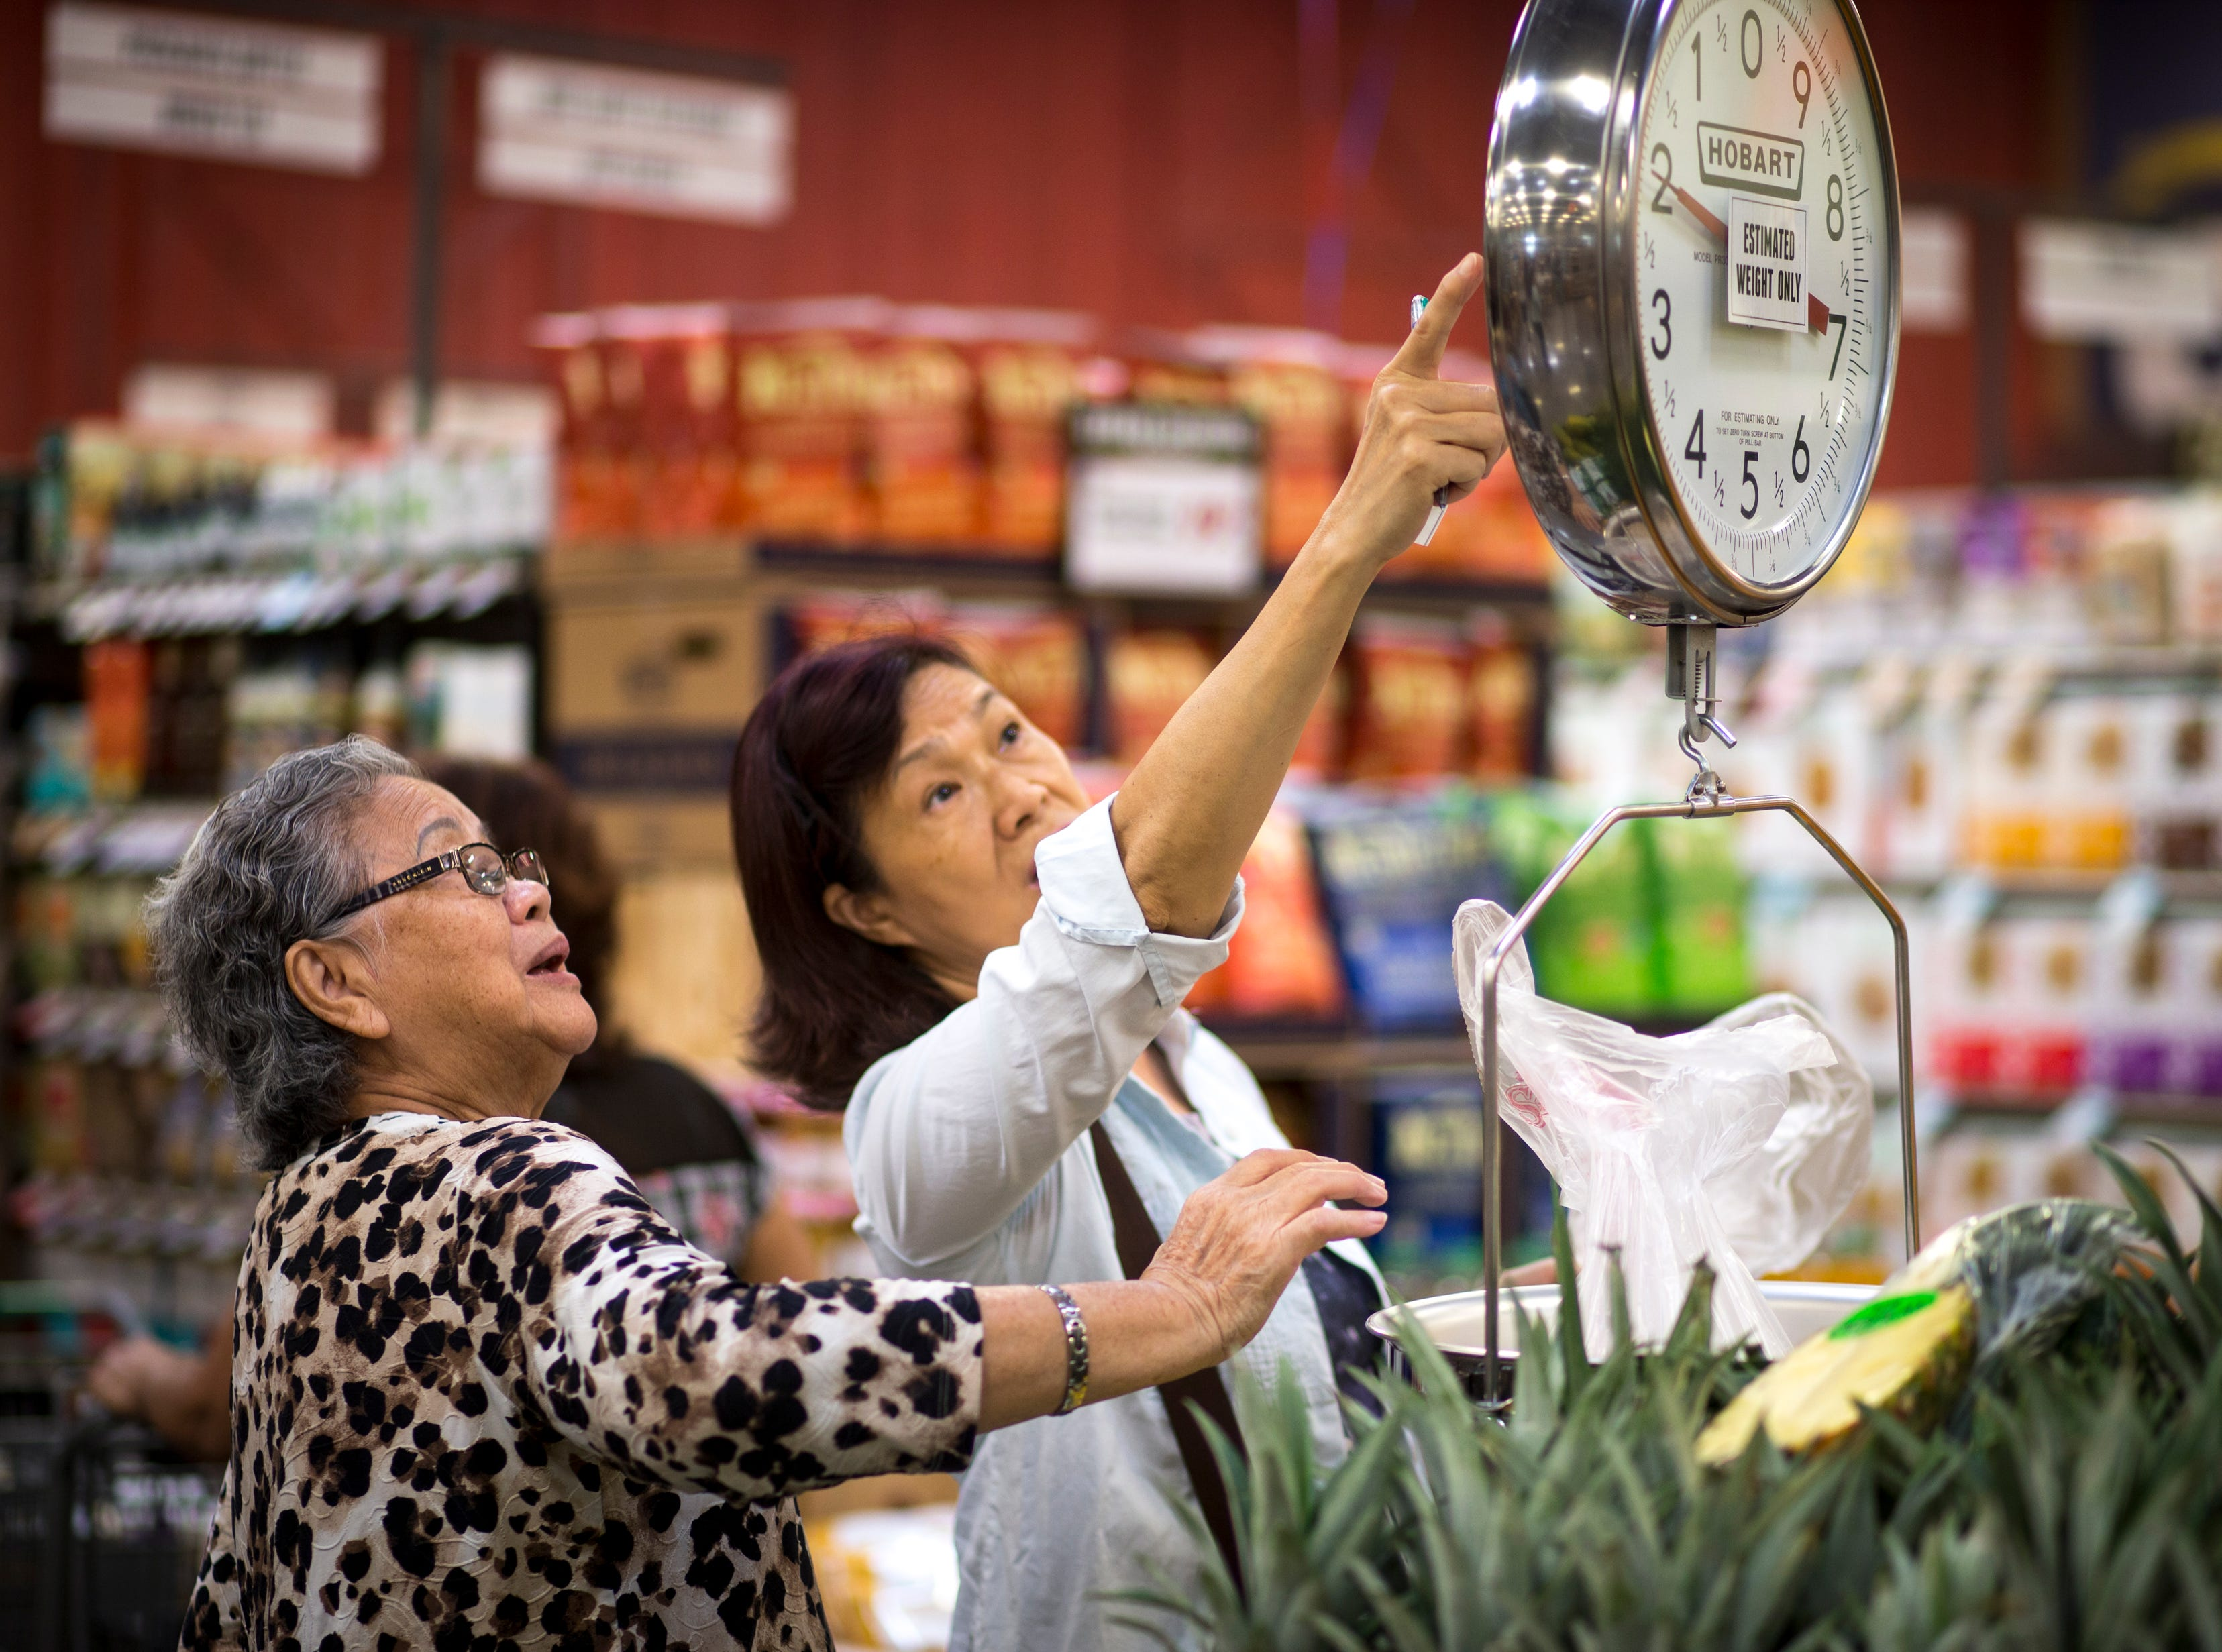 Sylvia Ma (right) and Kim Phan weigh produce Aug. 22, 2018, at the Sprouts Farmer's Market at Seventh Avenue and Osborn Road in Phoenix.